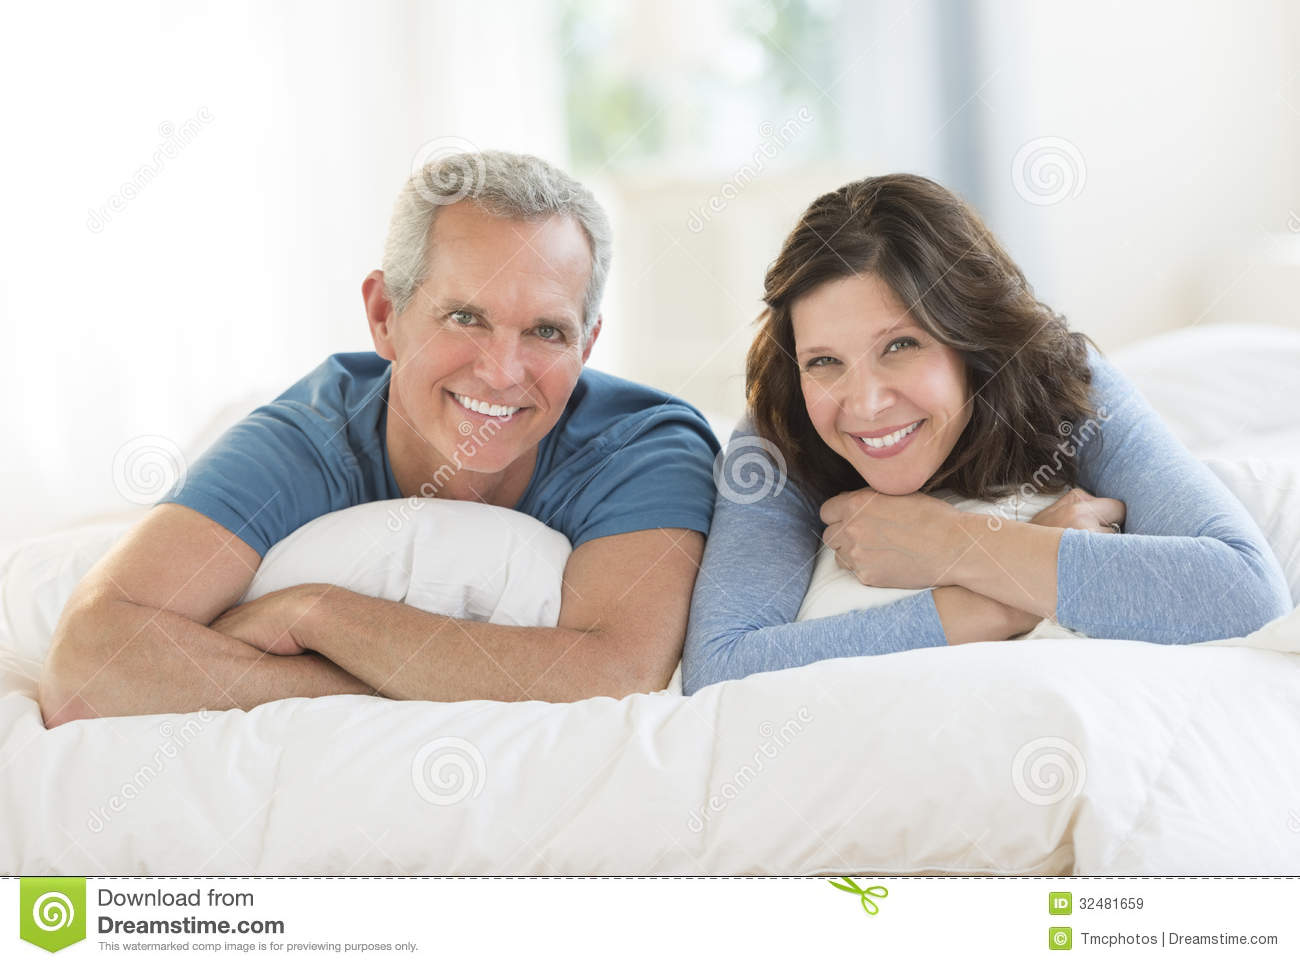 Husband Pillow On Bed